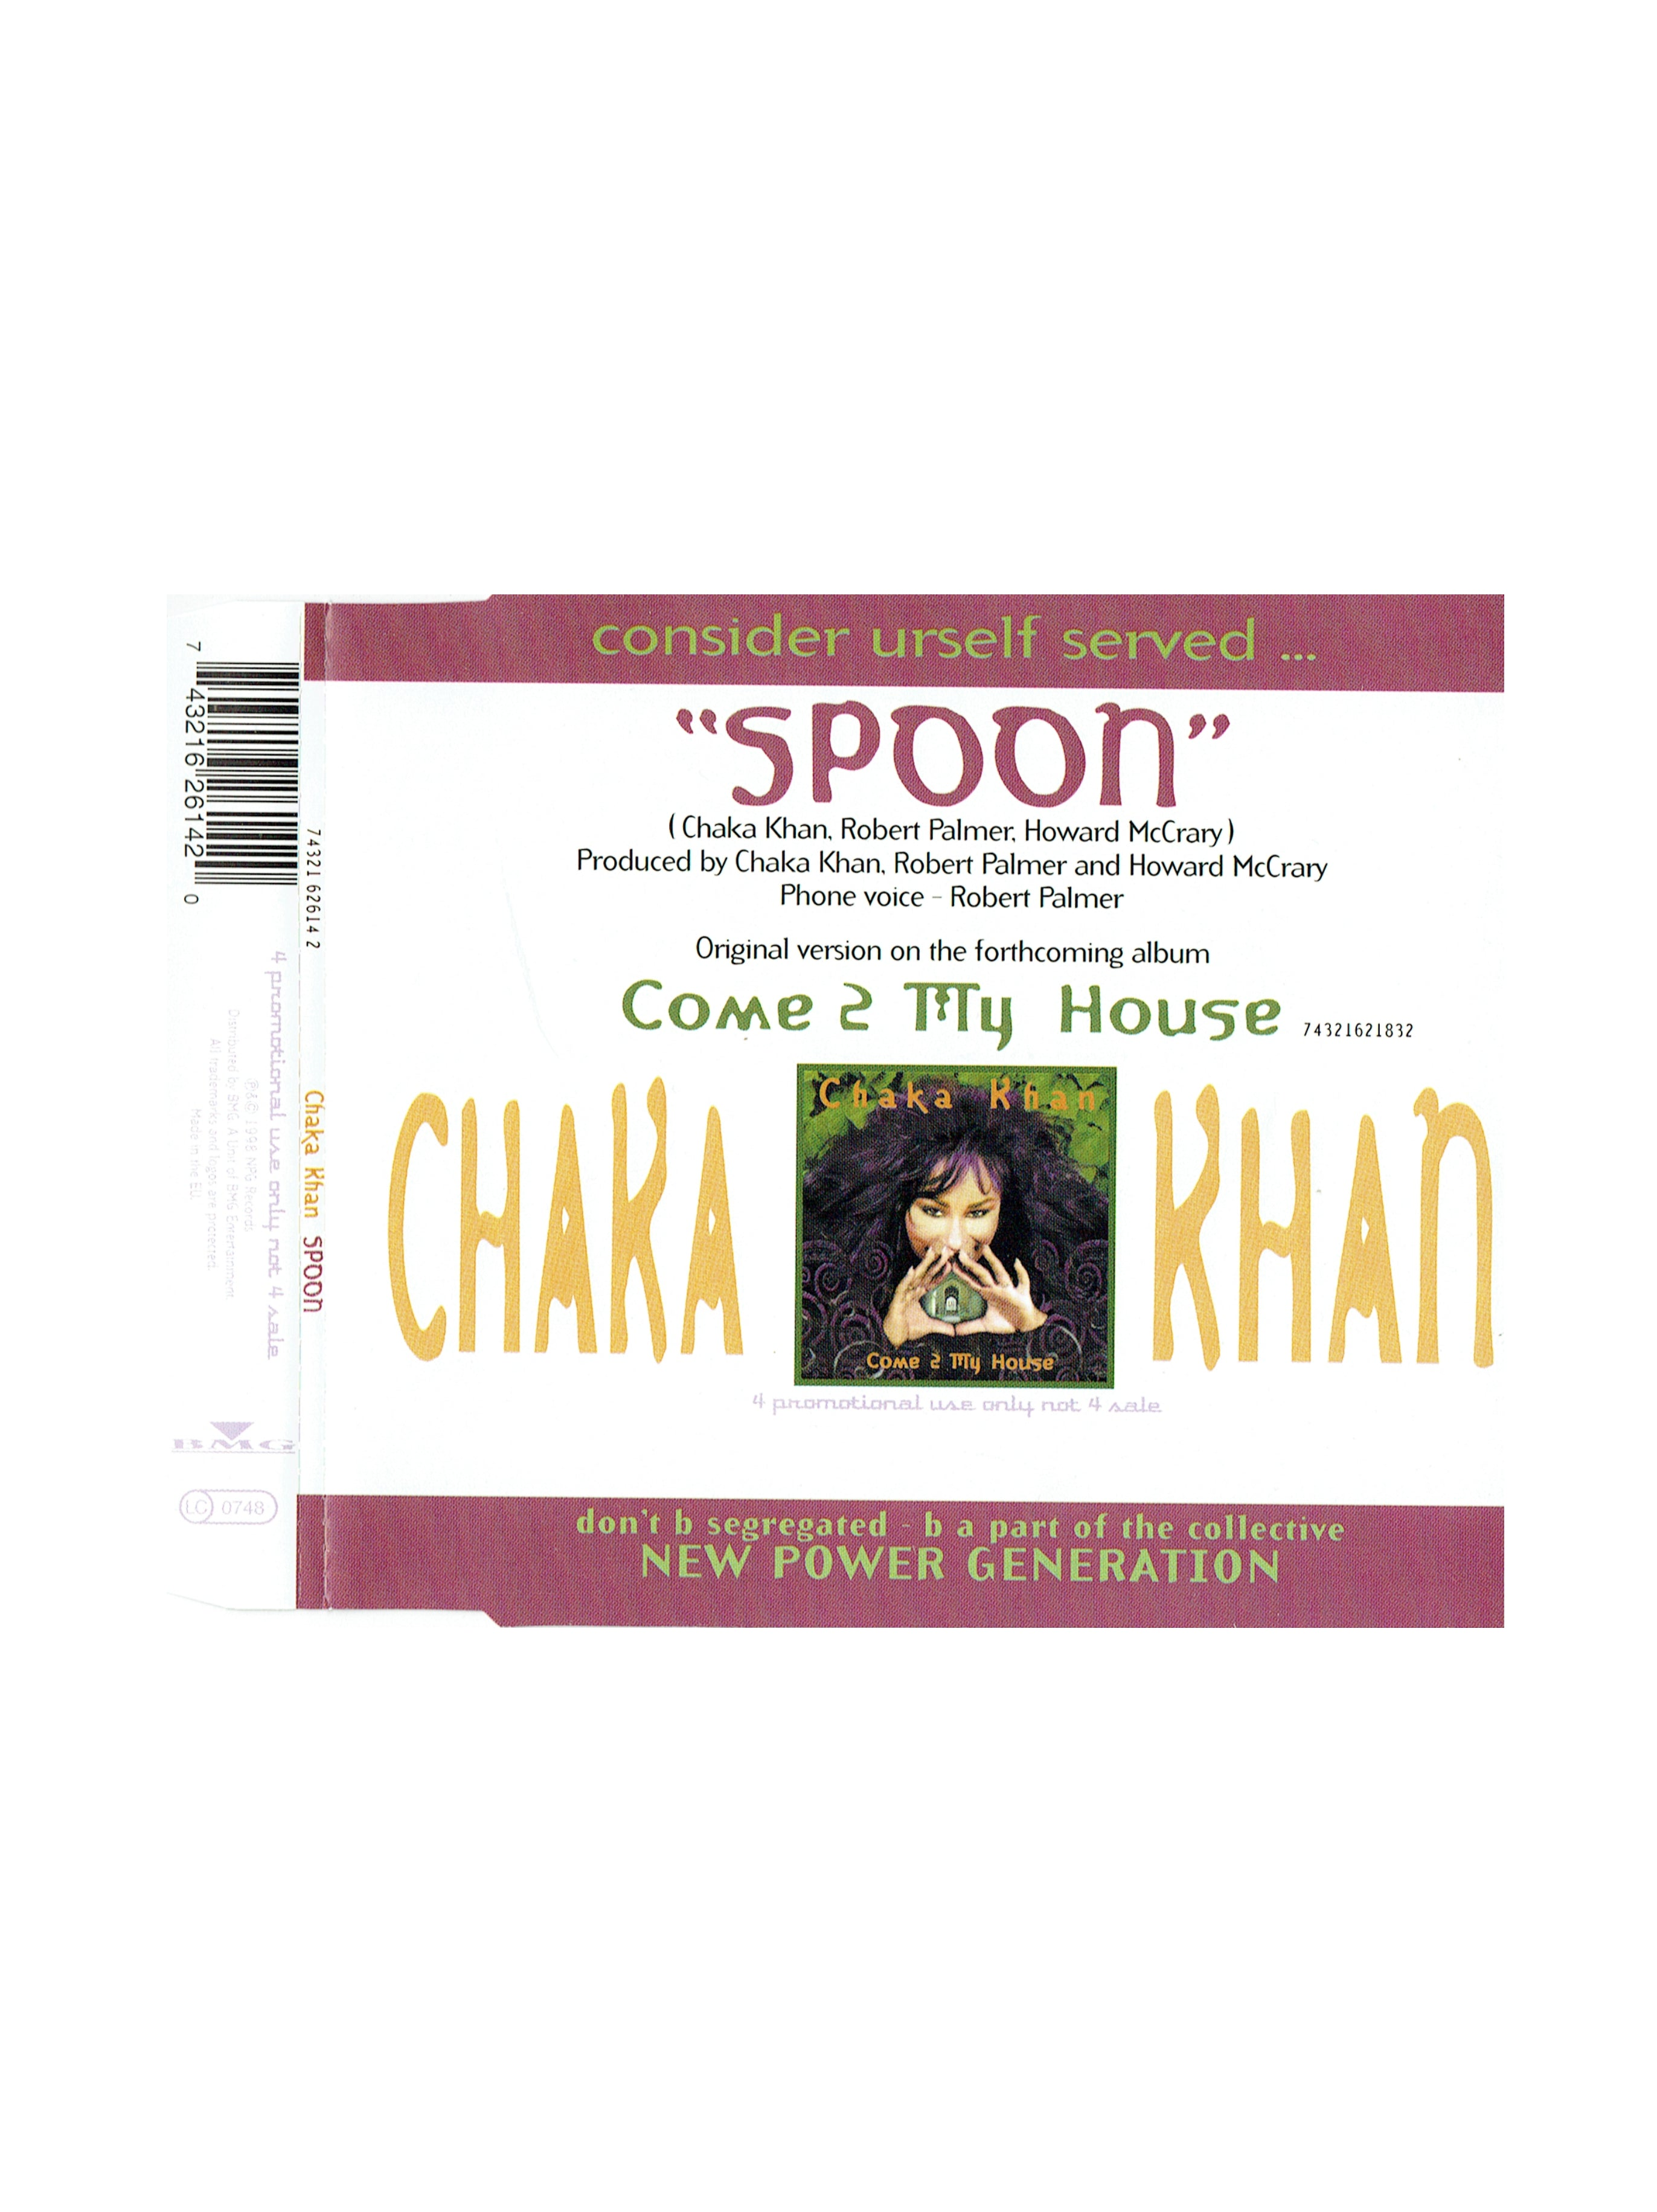 Chaka Khan SPOON From Come 2 My House Promotional CD Single Prince